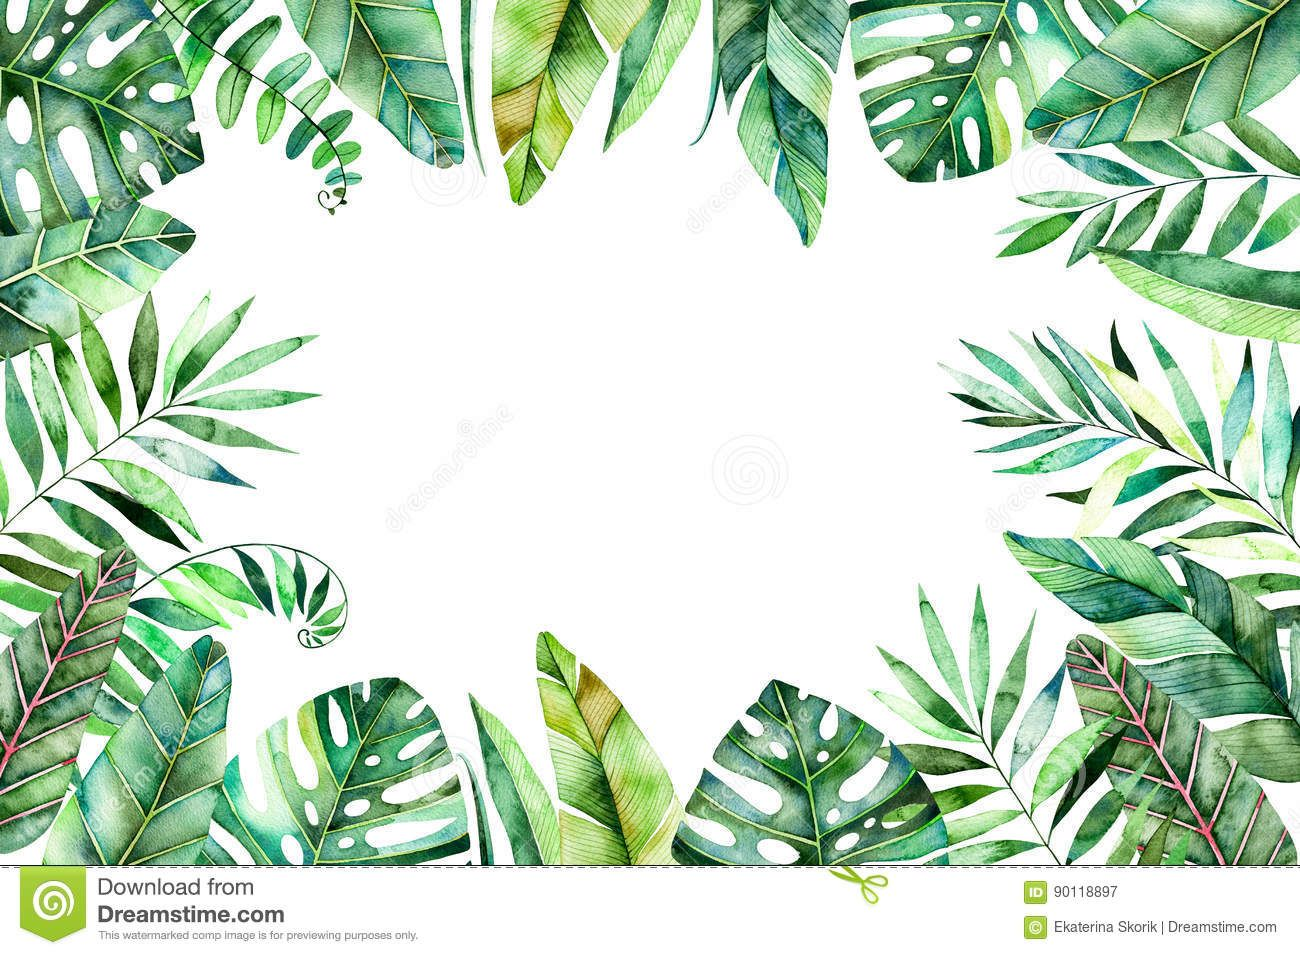 Colorful Watercolor Frame Border With Colorful Tropical Leaves